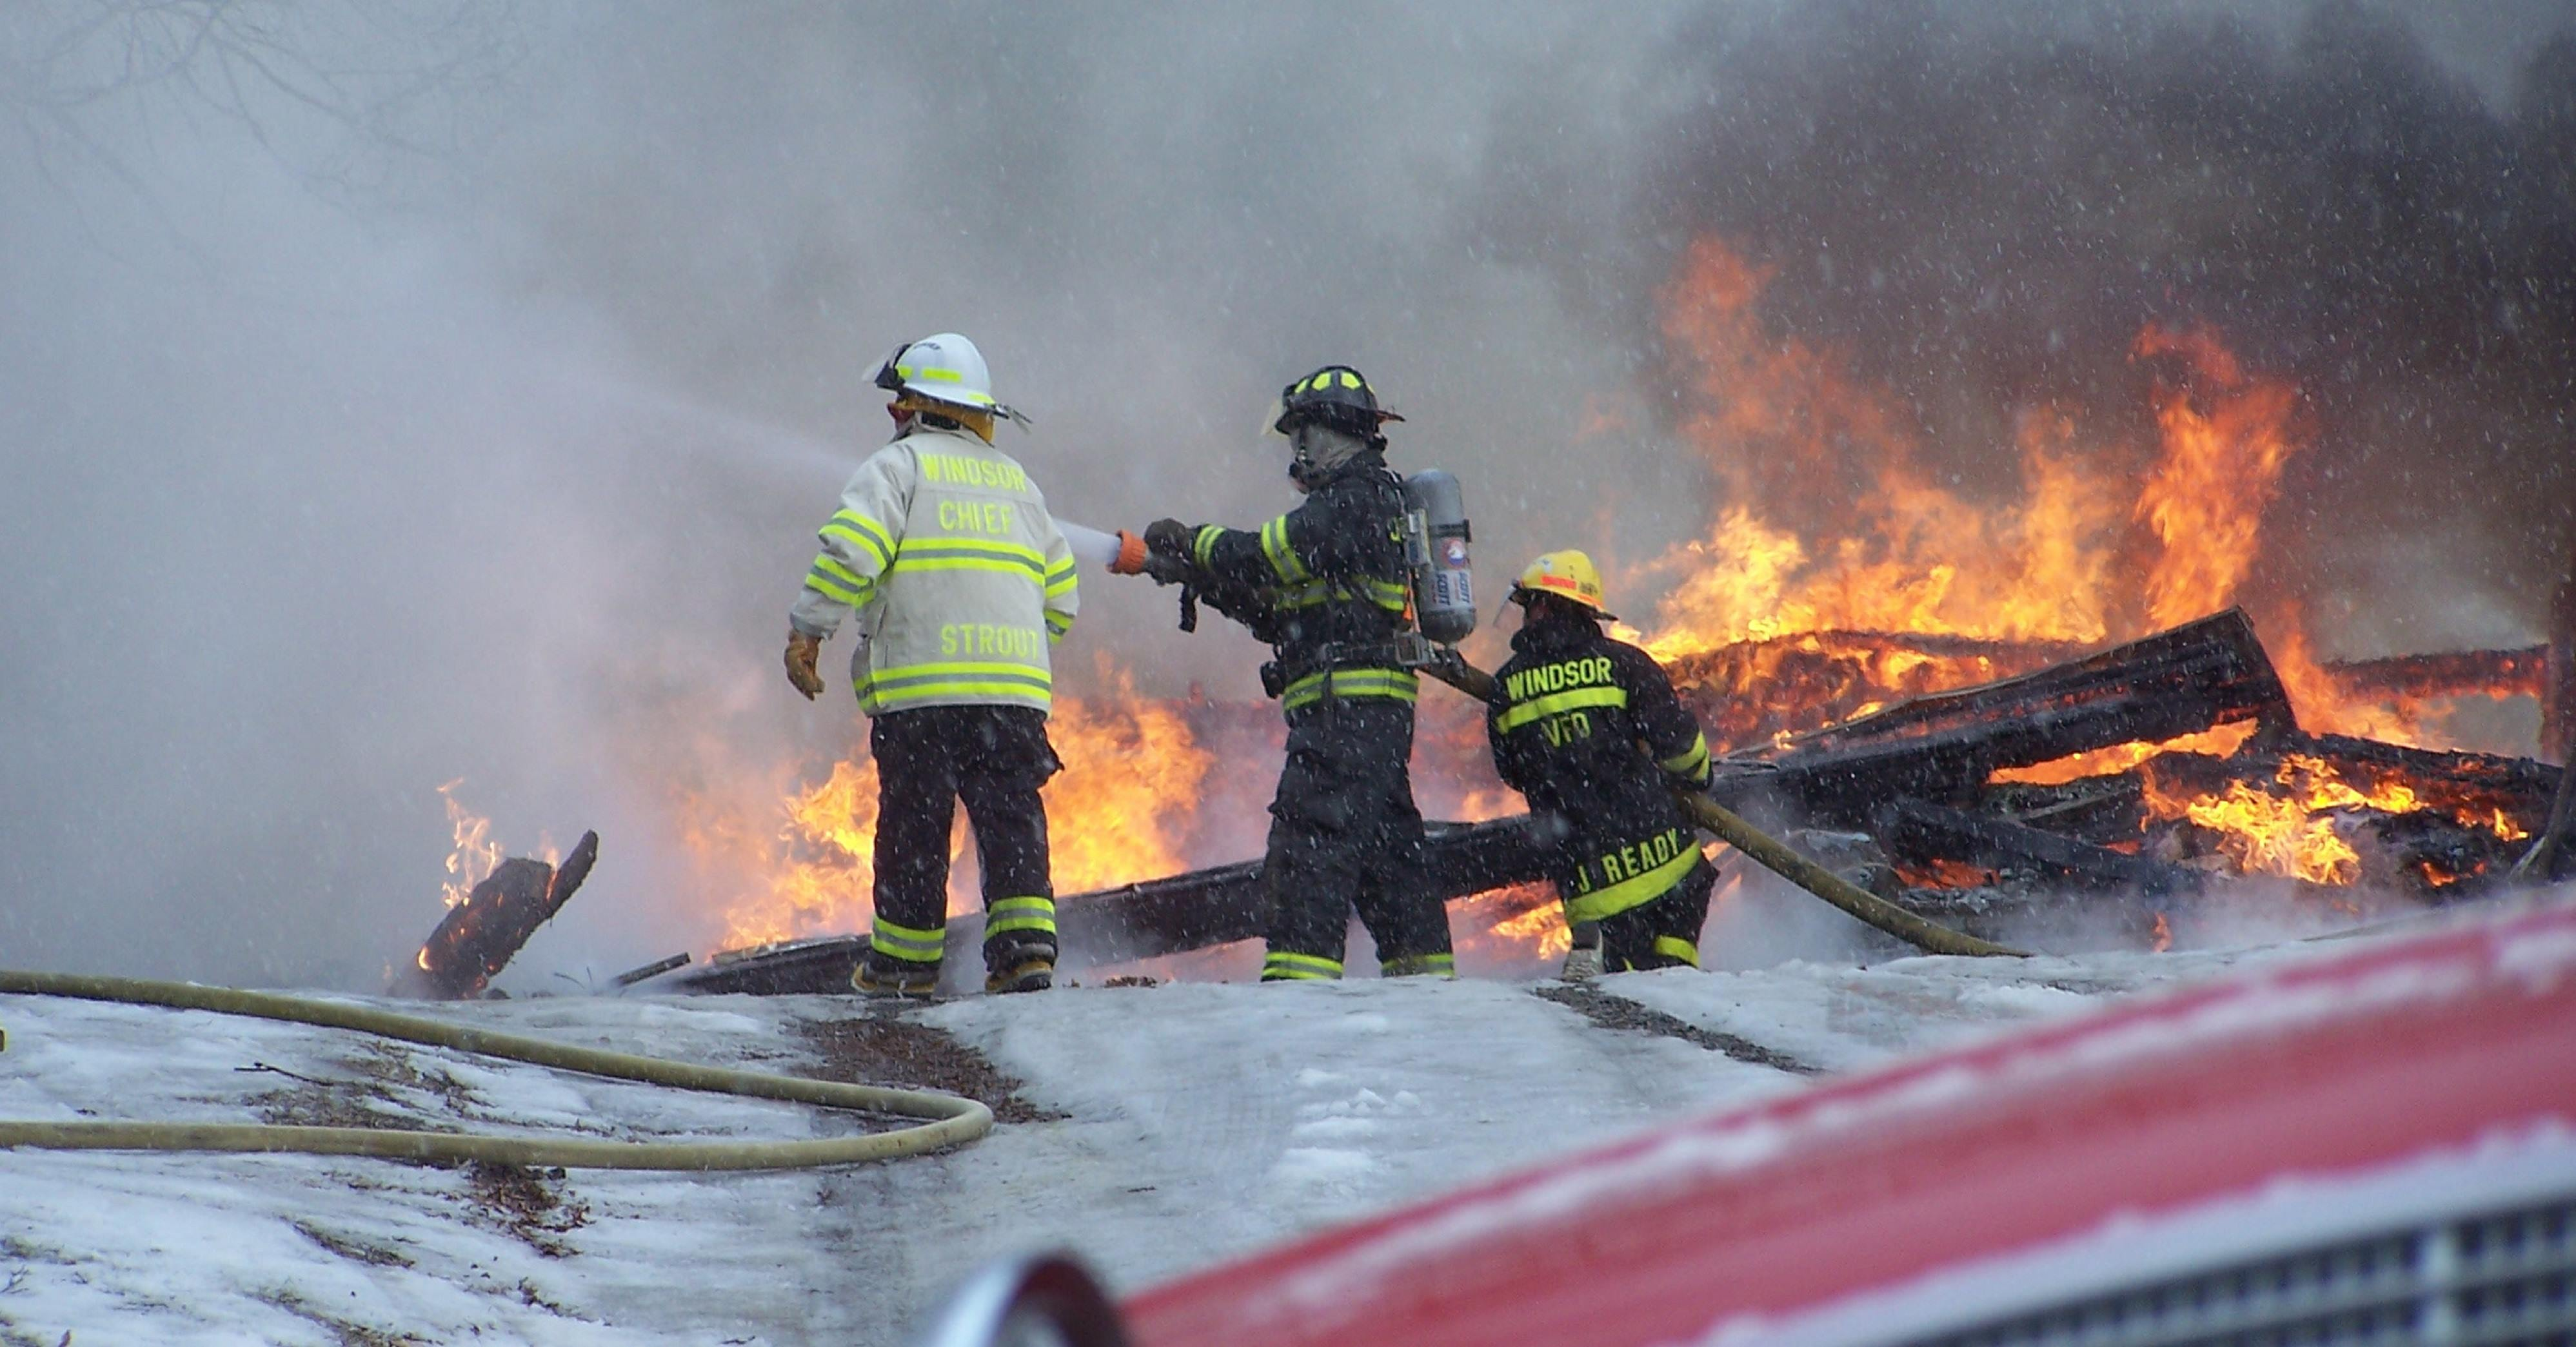 Fire Scene Pictures